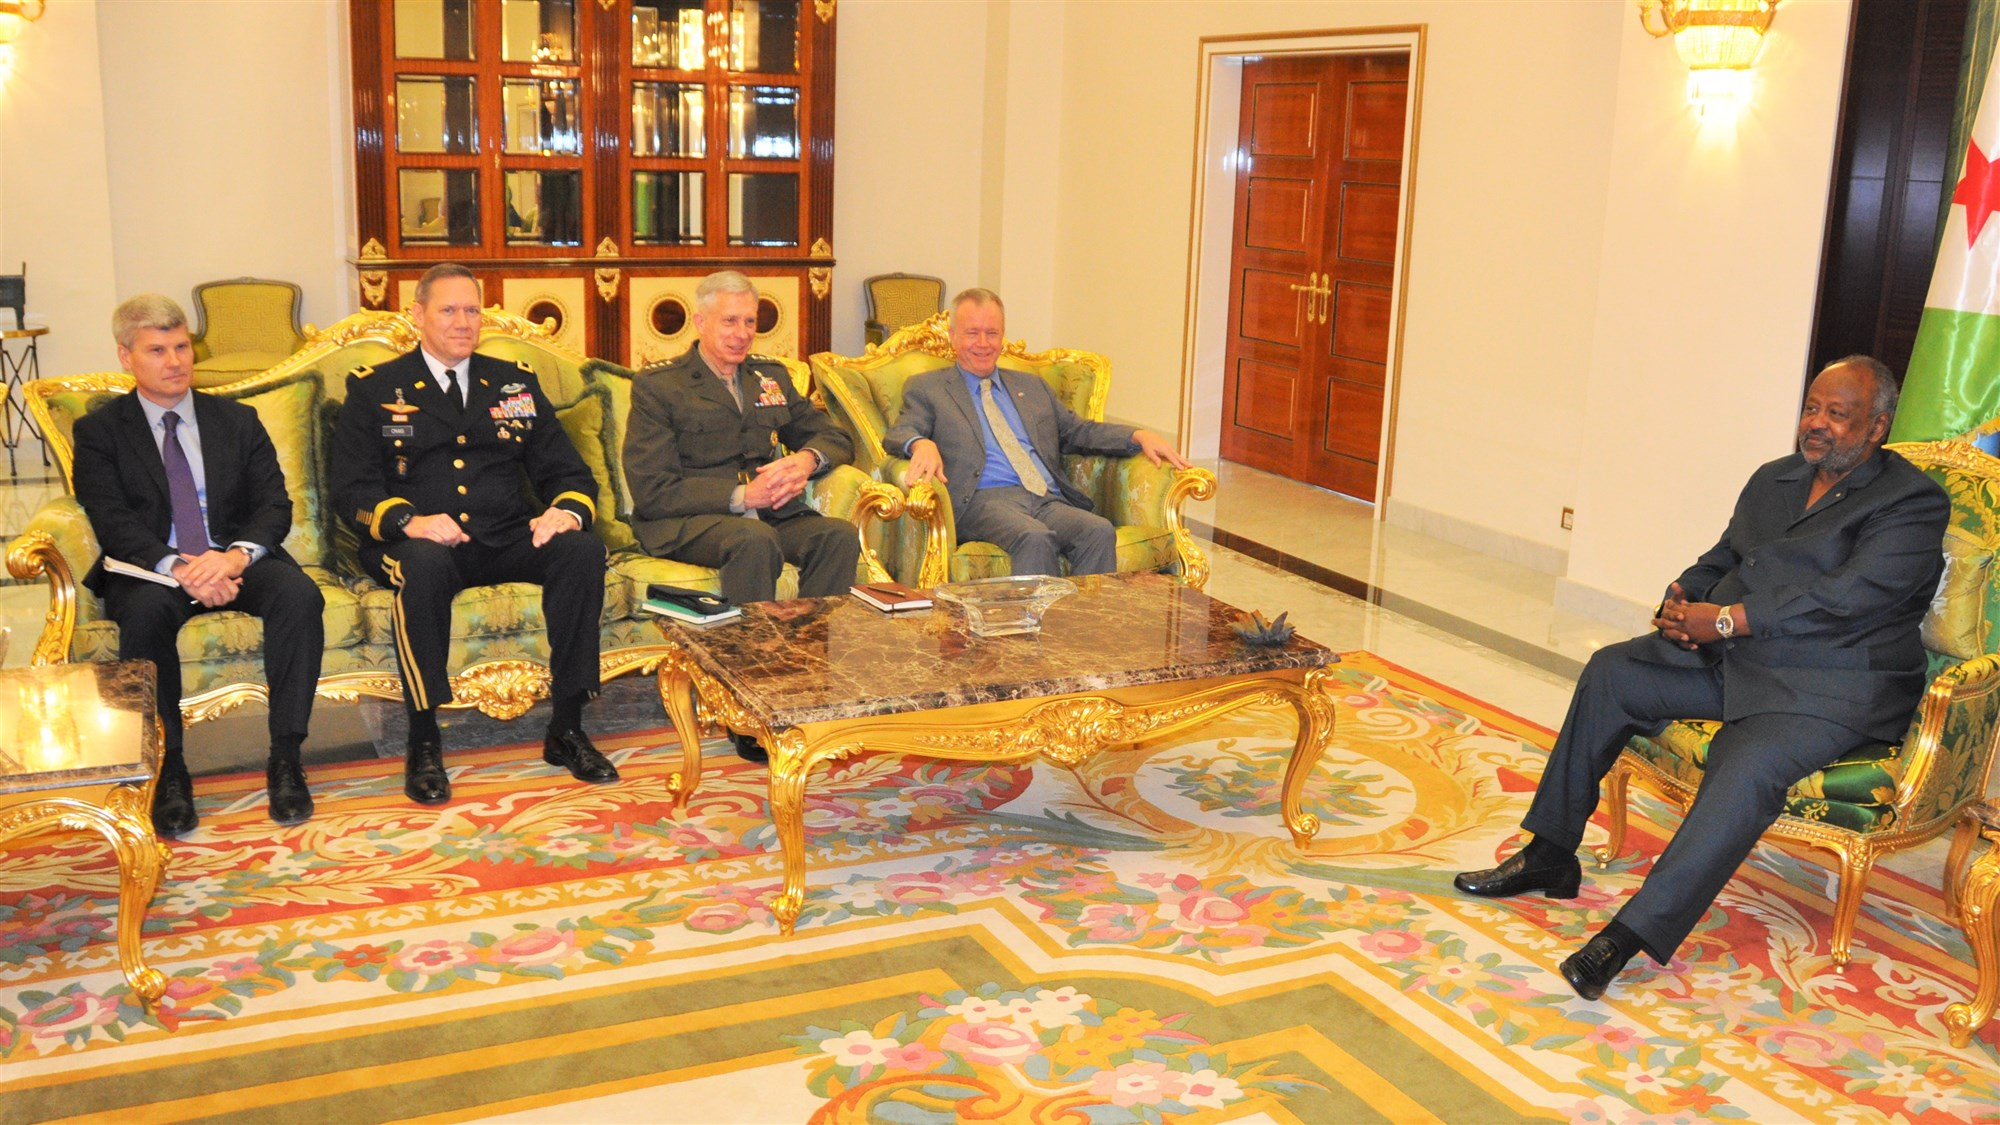 During a four-day trip to East Africa, Gen. Thomas D. Waldhauser, commander of United States Africa Command (AFRICOM), met with senior Djiboutian officials, including President Ismail Omar Guelleh